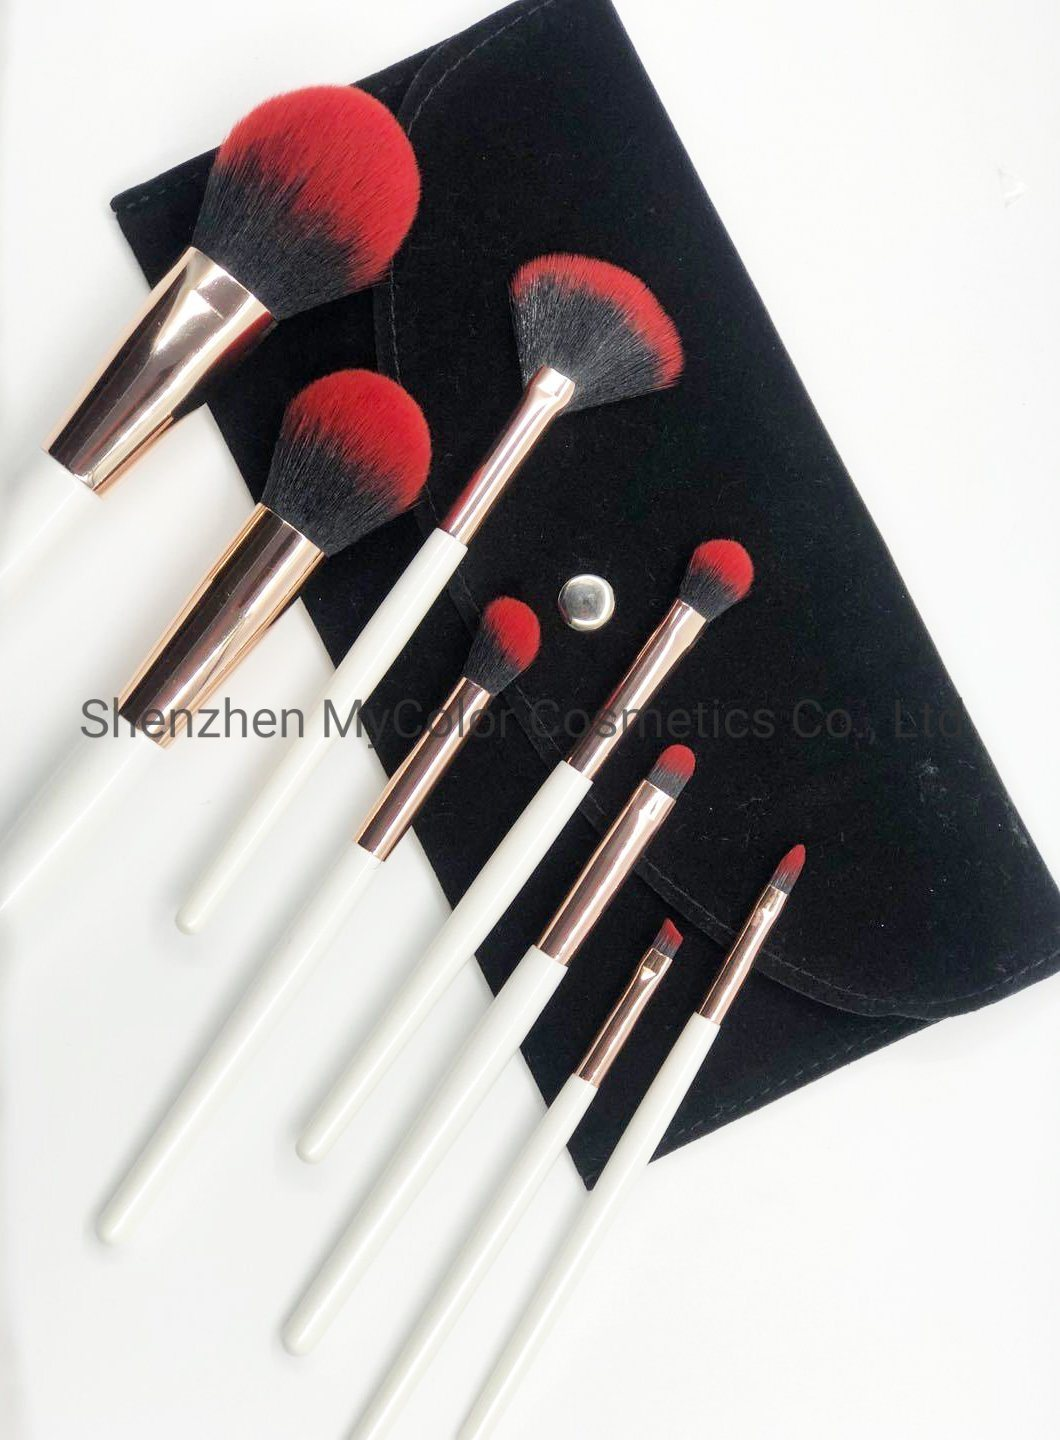 China Whole Private Logo Makeup